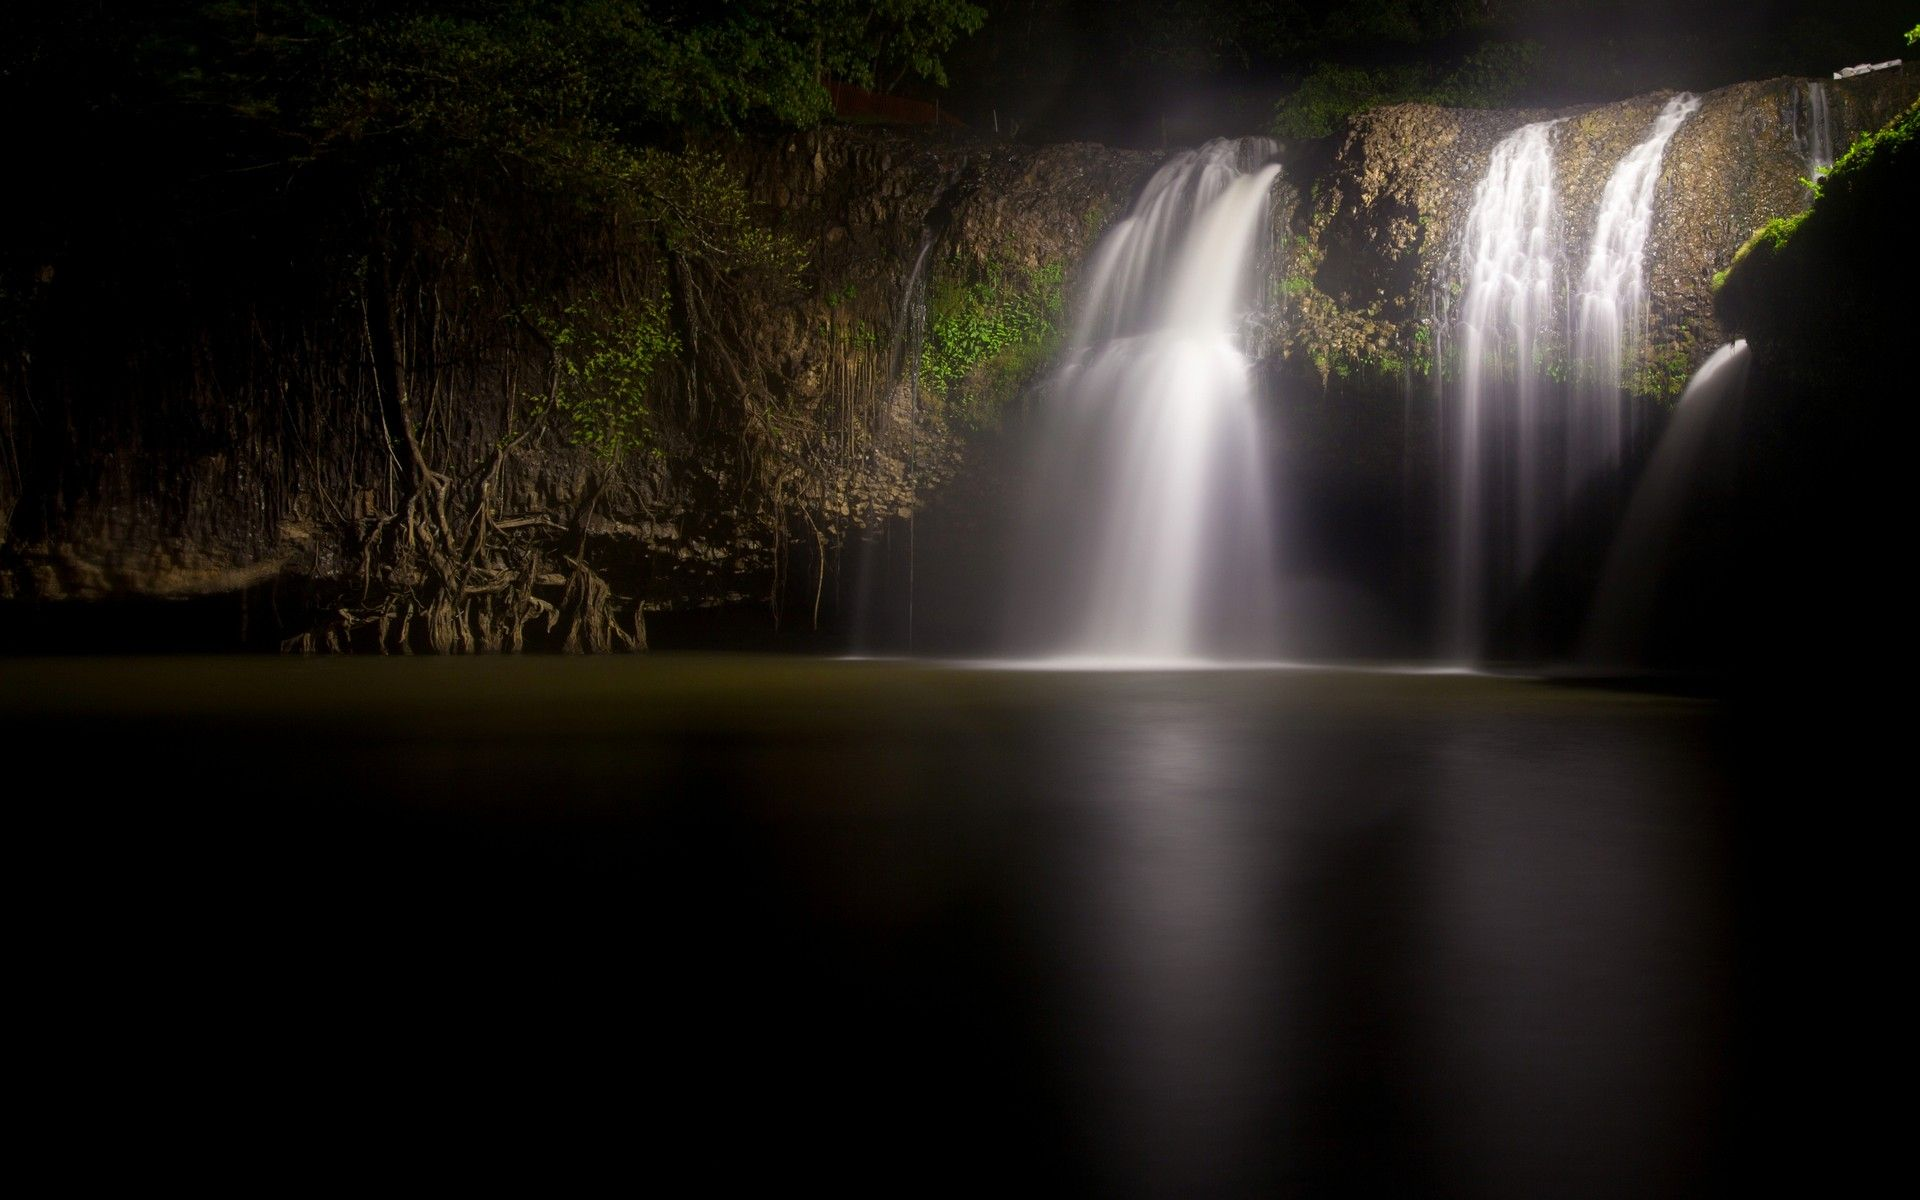 Dark Nature Wallpaper Landscapes Nature Dark Night Waterfalls